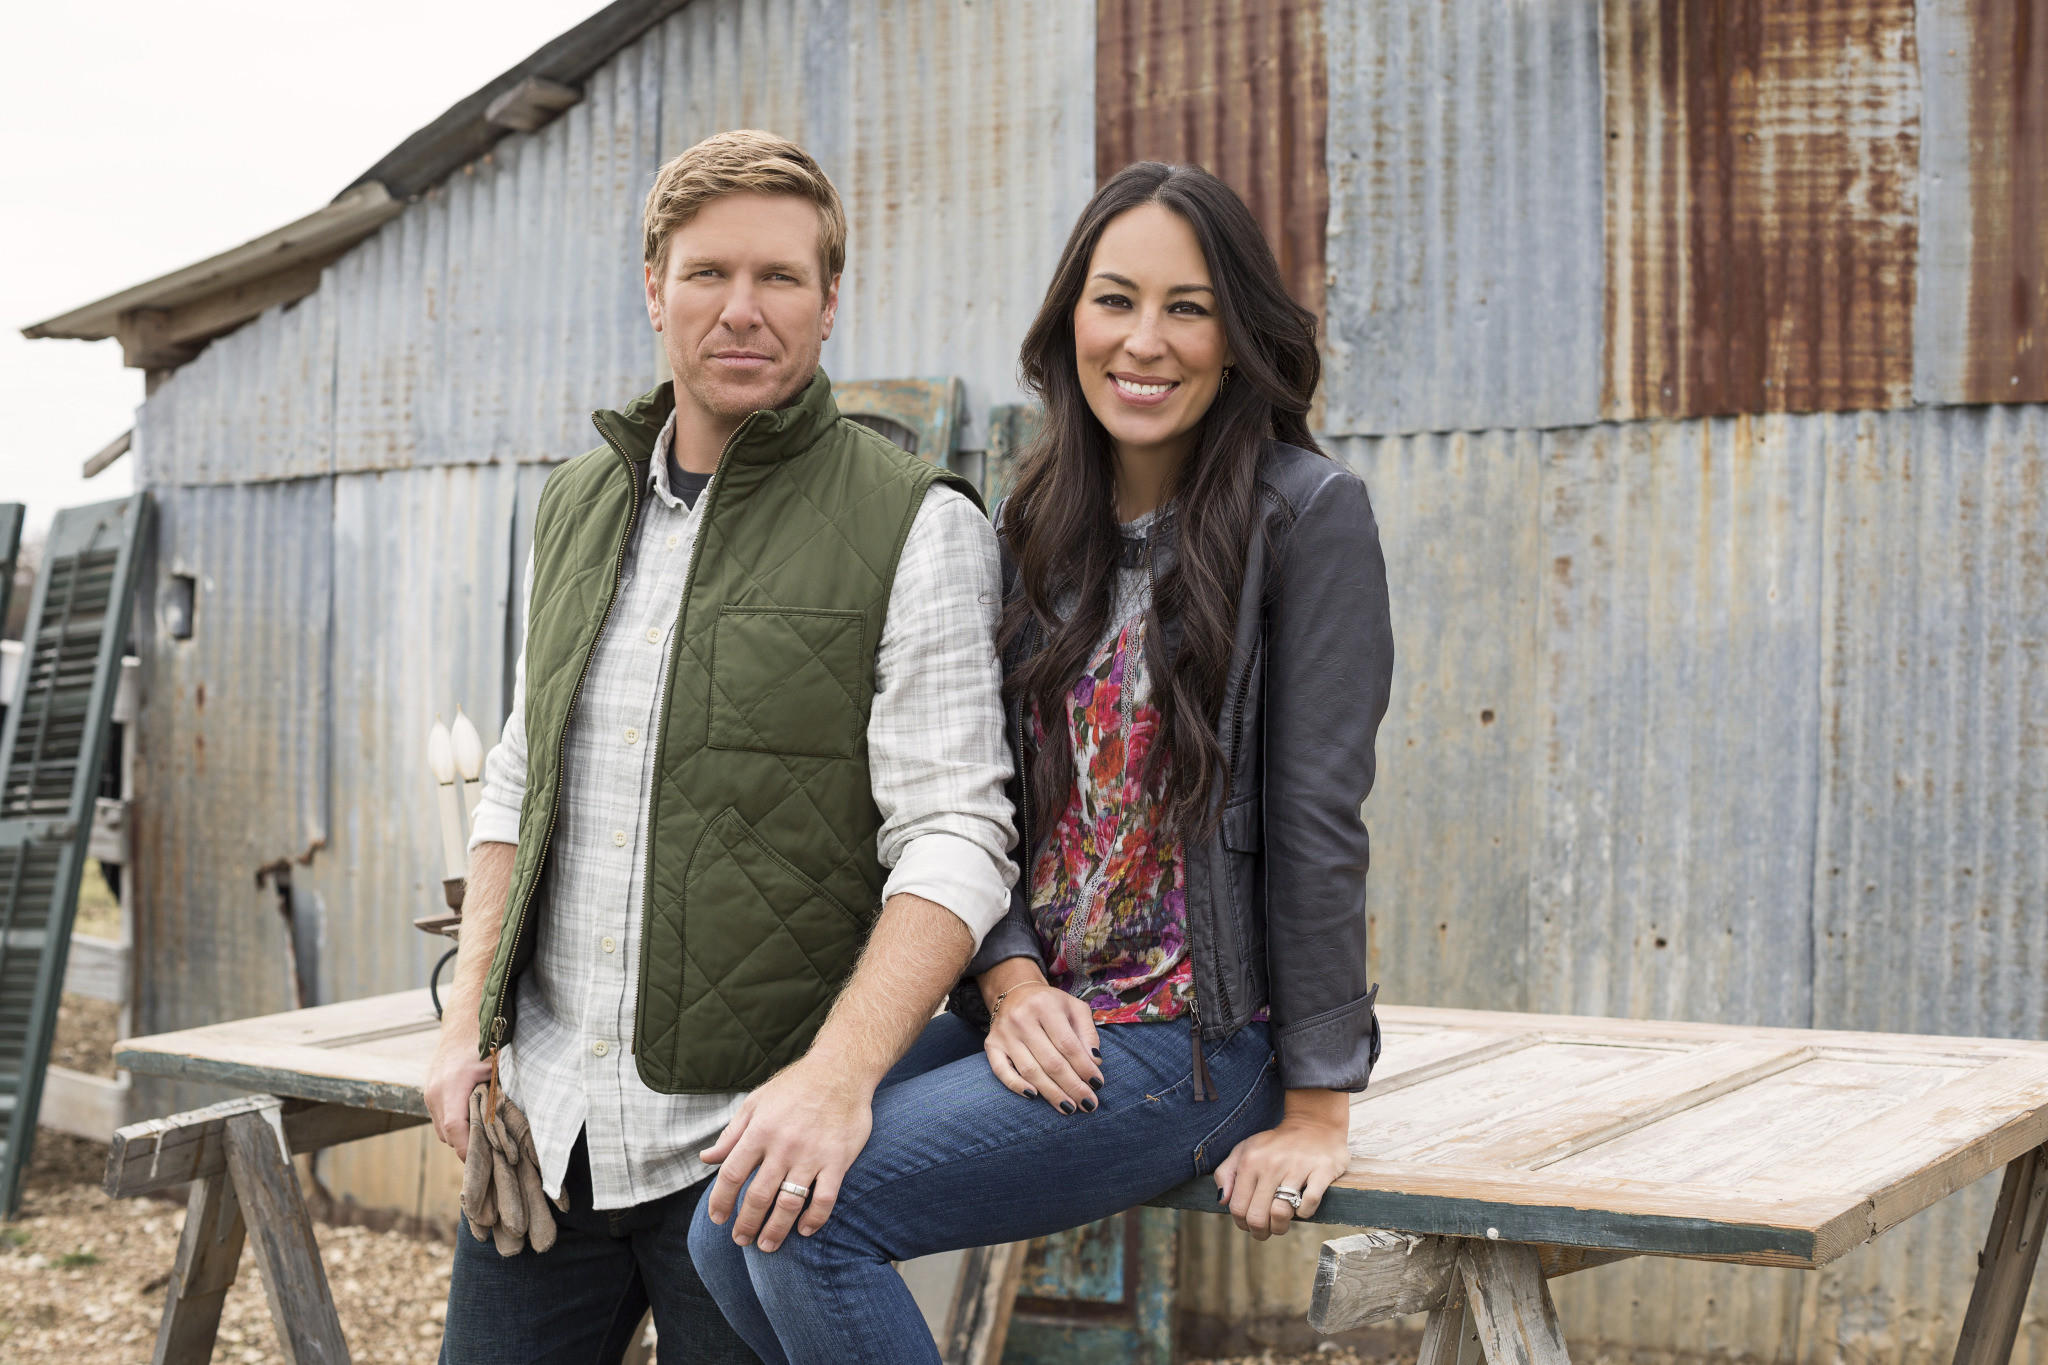 chip and joanna gaines announce departure from hgtv 39 s 39 fixer upper 39 la times. Black Bedroom Furniture Sets. Home Design Ideas